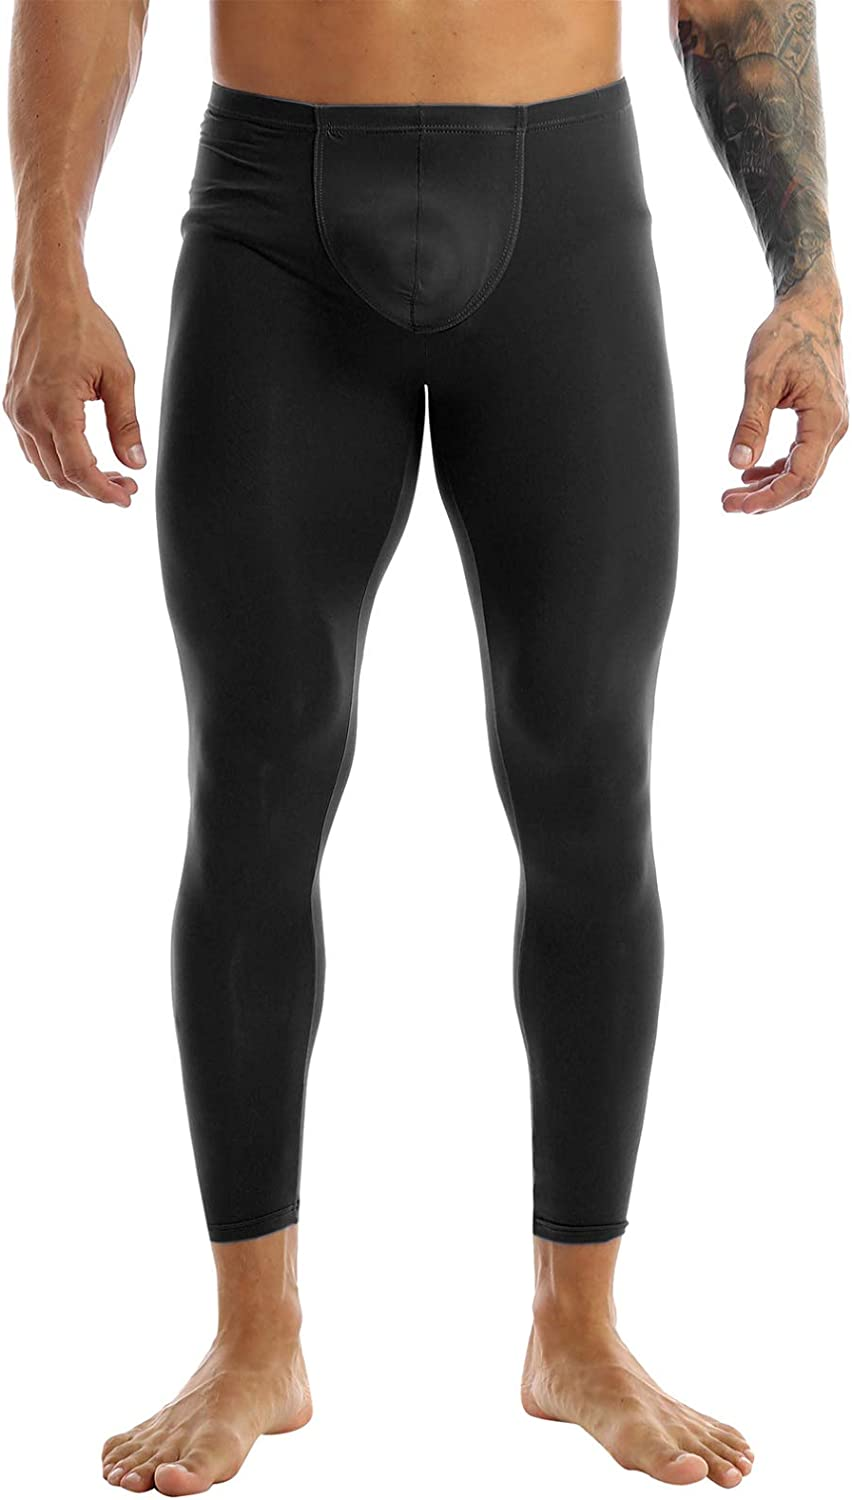 JEEYJOO Men's Soft Ice Silk Transparent Long Thermal Pants Bulge Pouch Underwear